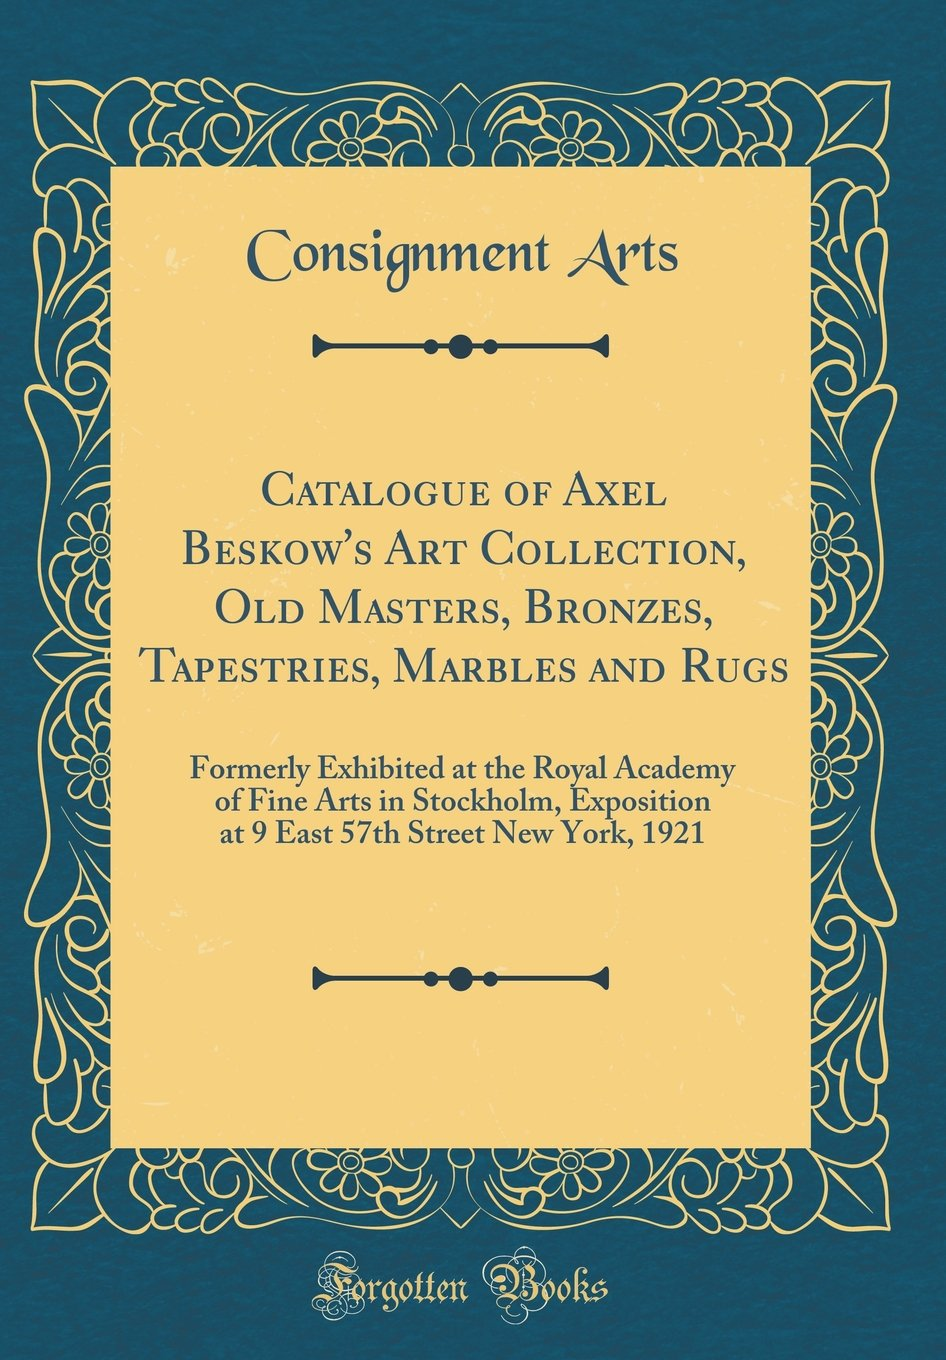 Catalogue of Axel Beskow's Art Collection, Old Masters, Bronzes, Tapestries, Marbles and Rugs: Formerly Exhibited at the Royal Academy of Fine Arts in ... 57th Street New York, 1921 (Classic Reprint) PDF